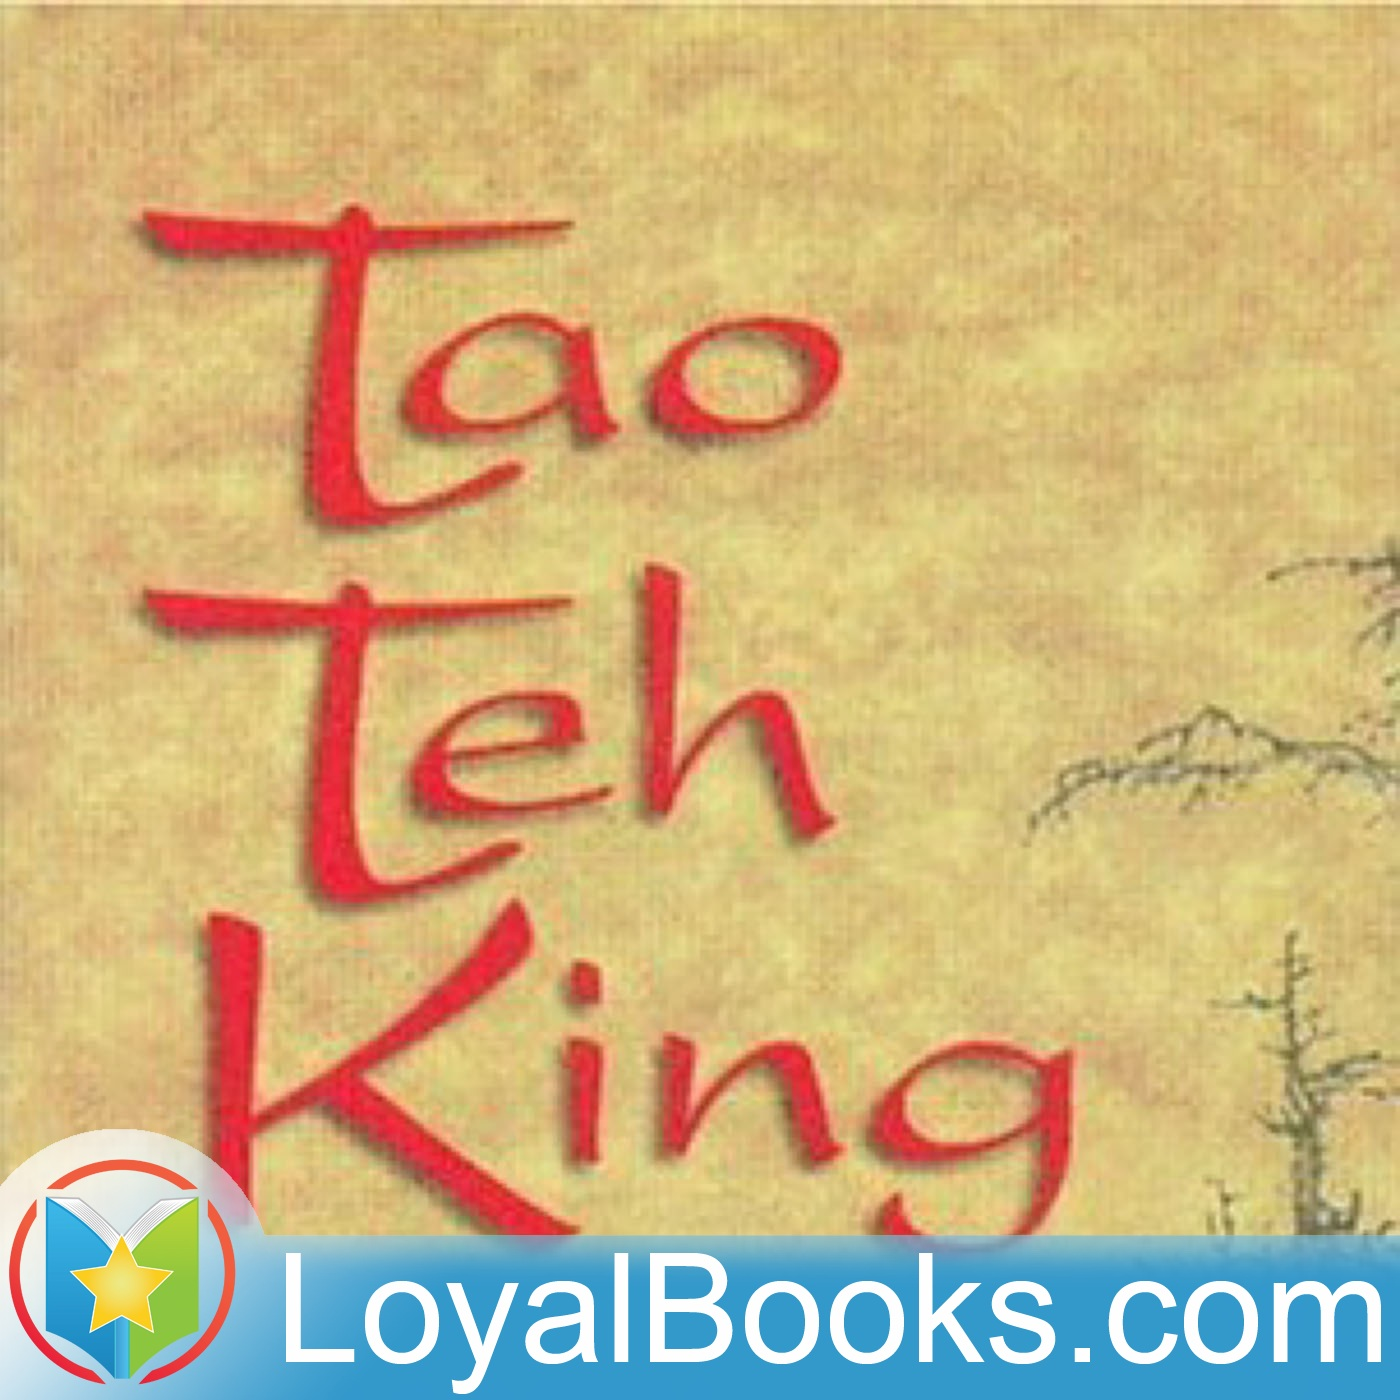 <![CDATA[The Tao Teh King, or the Tao and its Characteristics by Laozi]]>